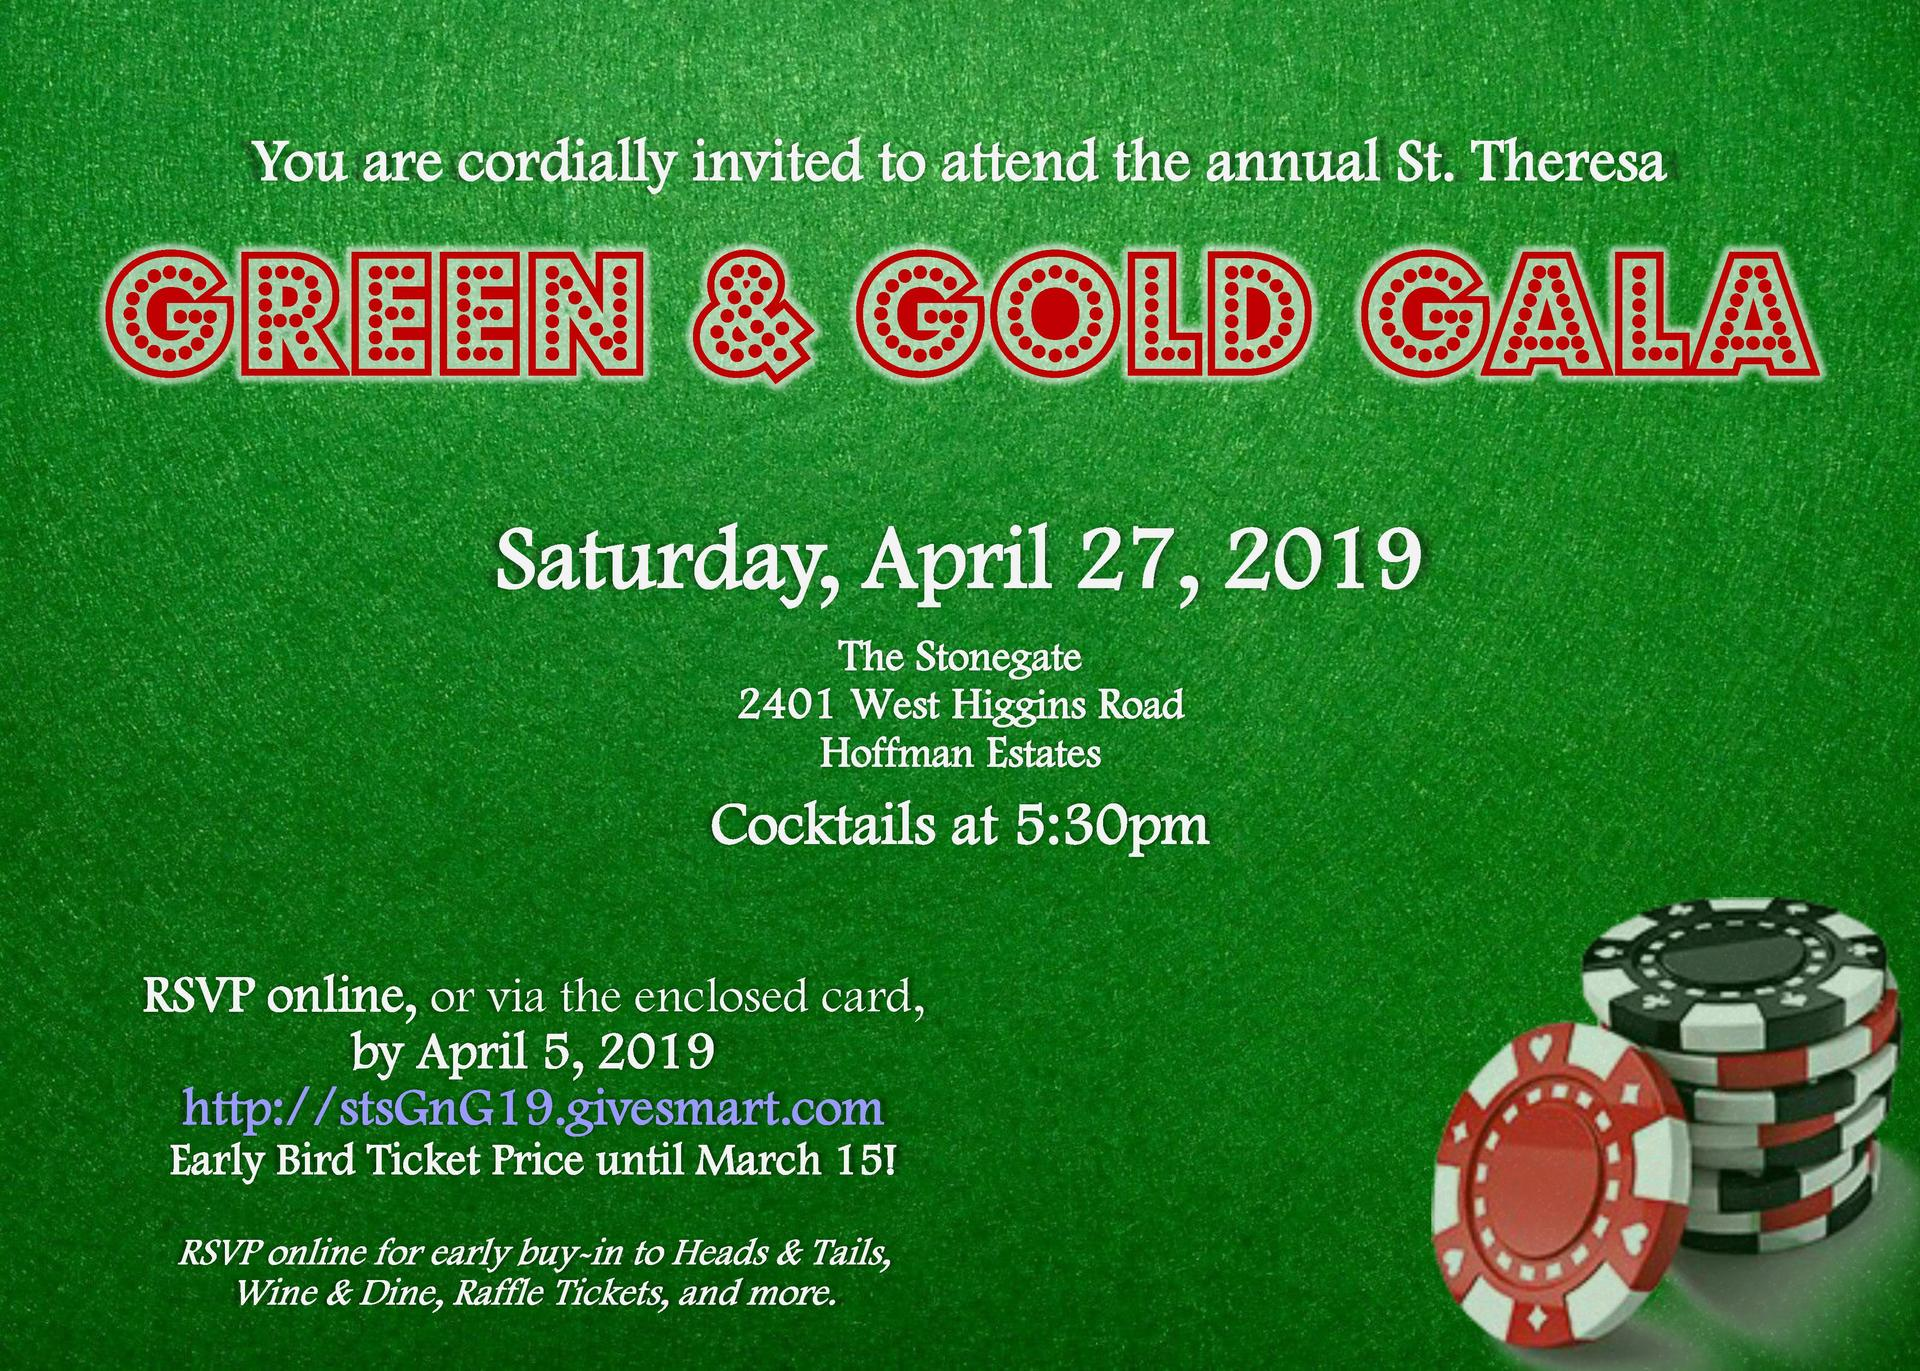 Green and Gold Invitation Details